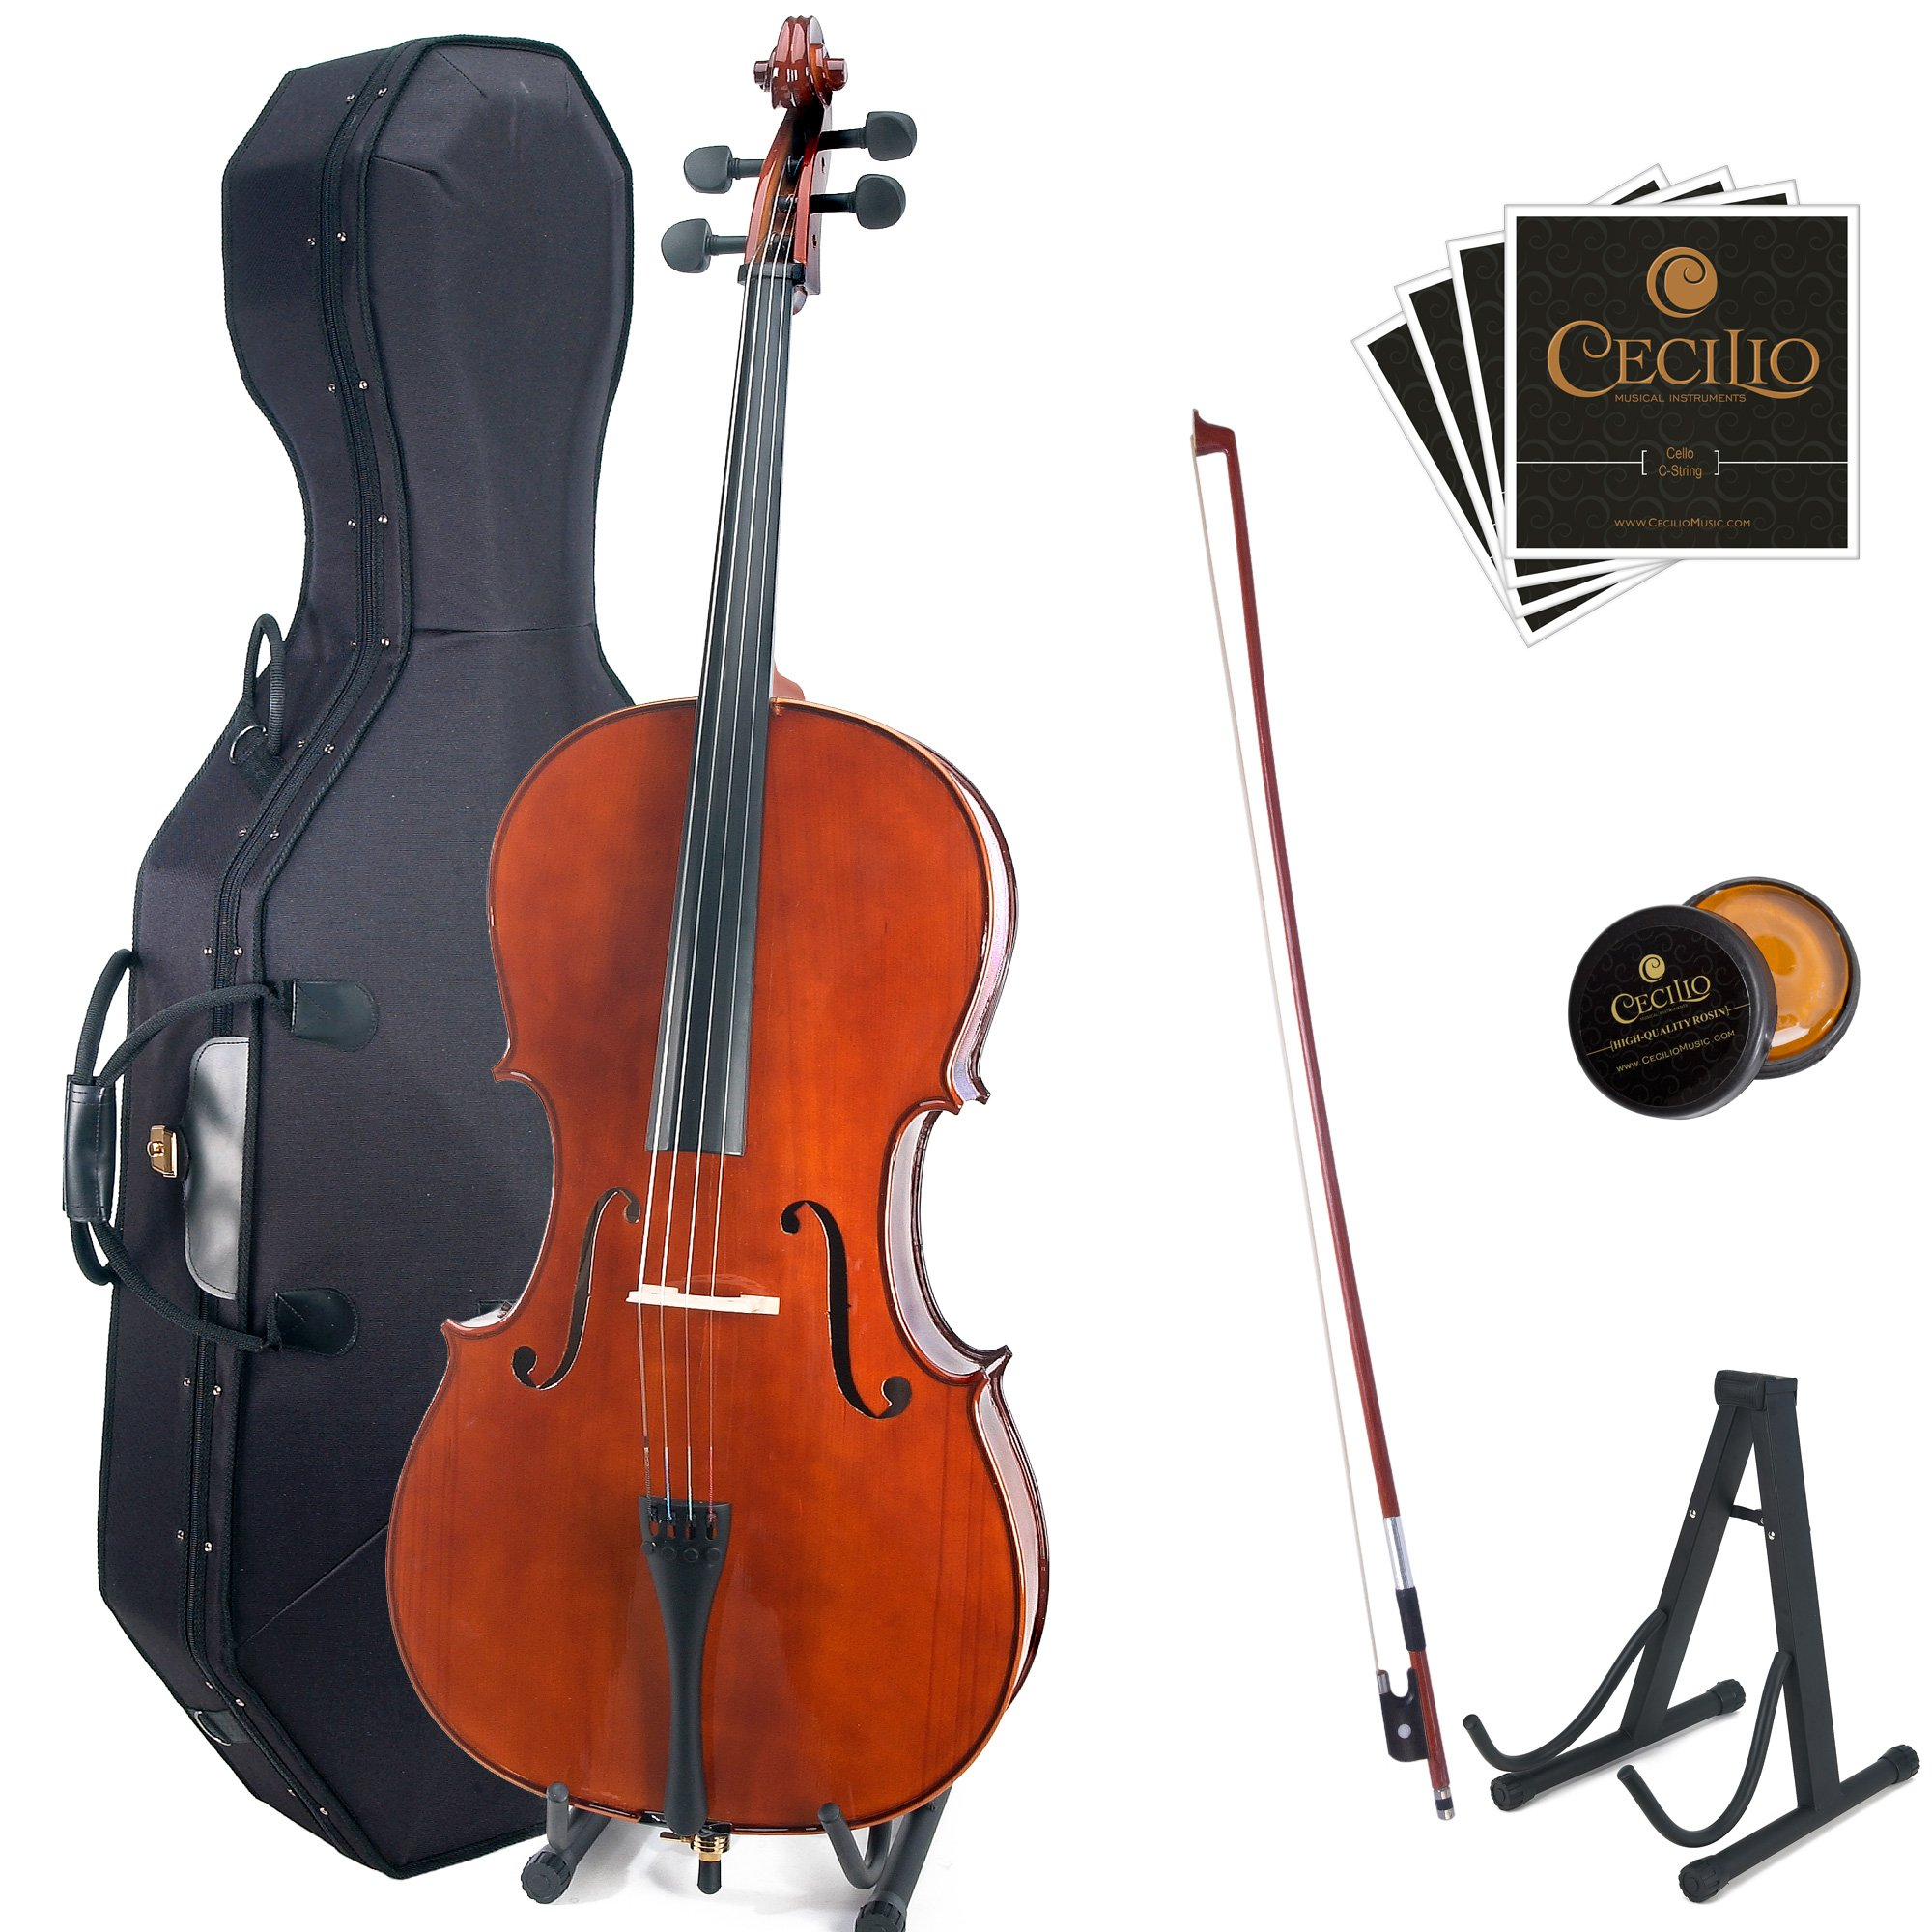 Cecilio CCO-200 Solid Wood Cello with Hard & Soft Case, Stand, Bow, Rosin, Bridge and Extra Set of Strings, Size 4/4 (Full Size) by Cecilio